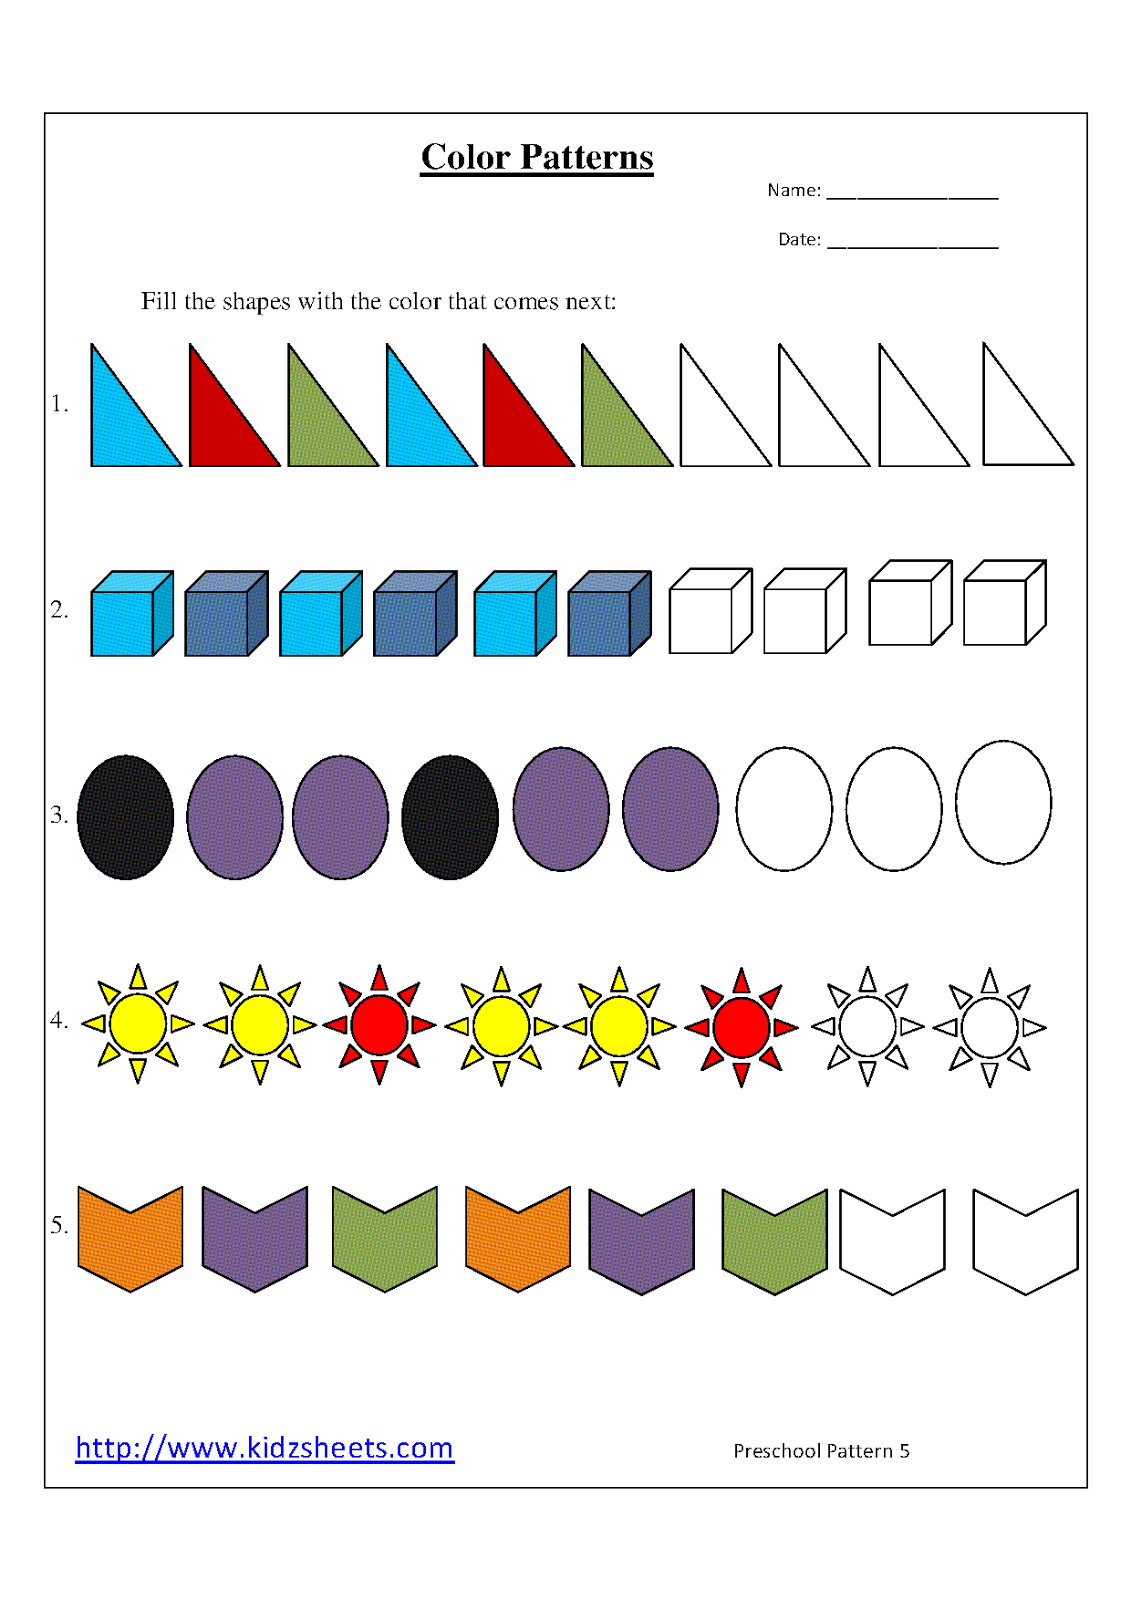 Kidz Worksheets Preschool Color Patterns Worksheet5